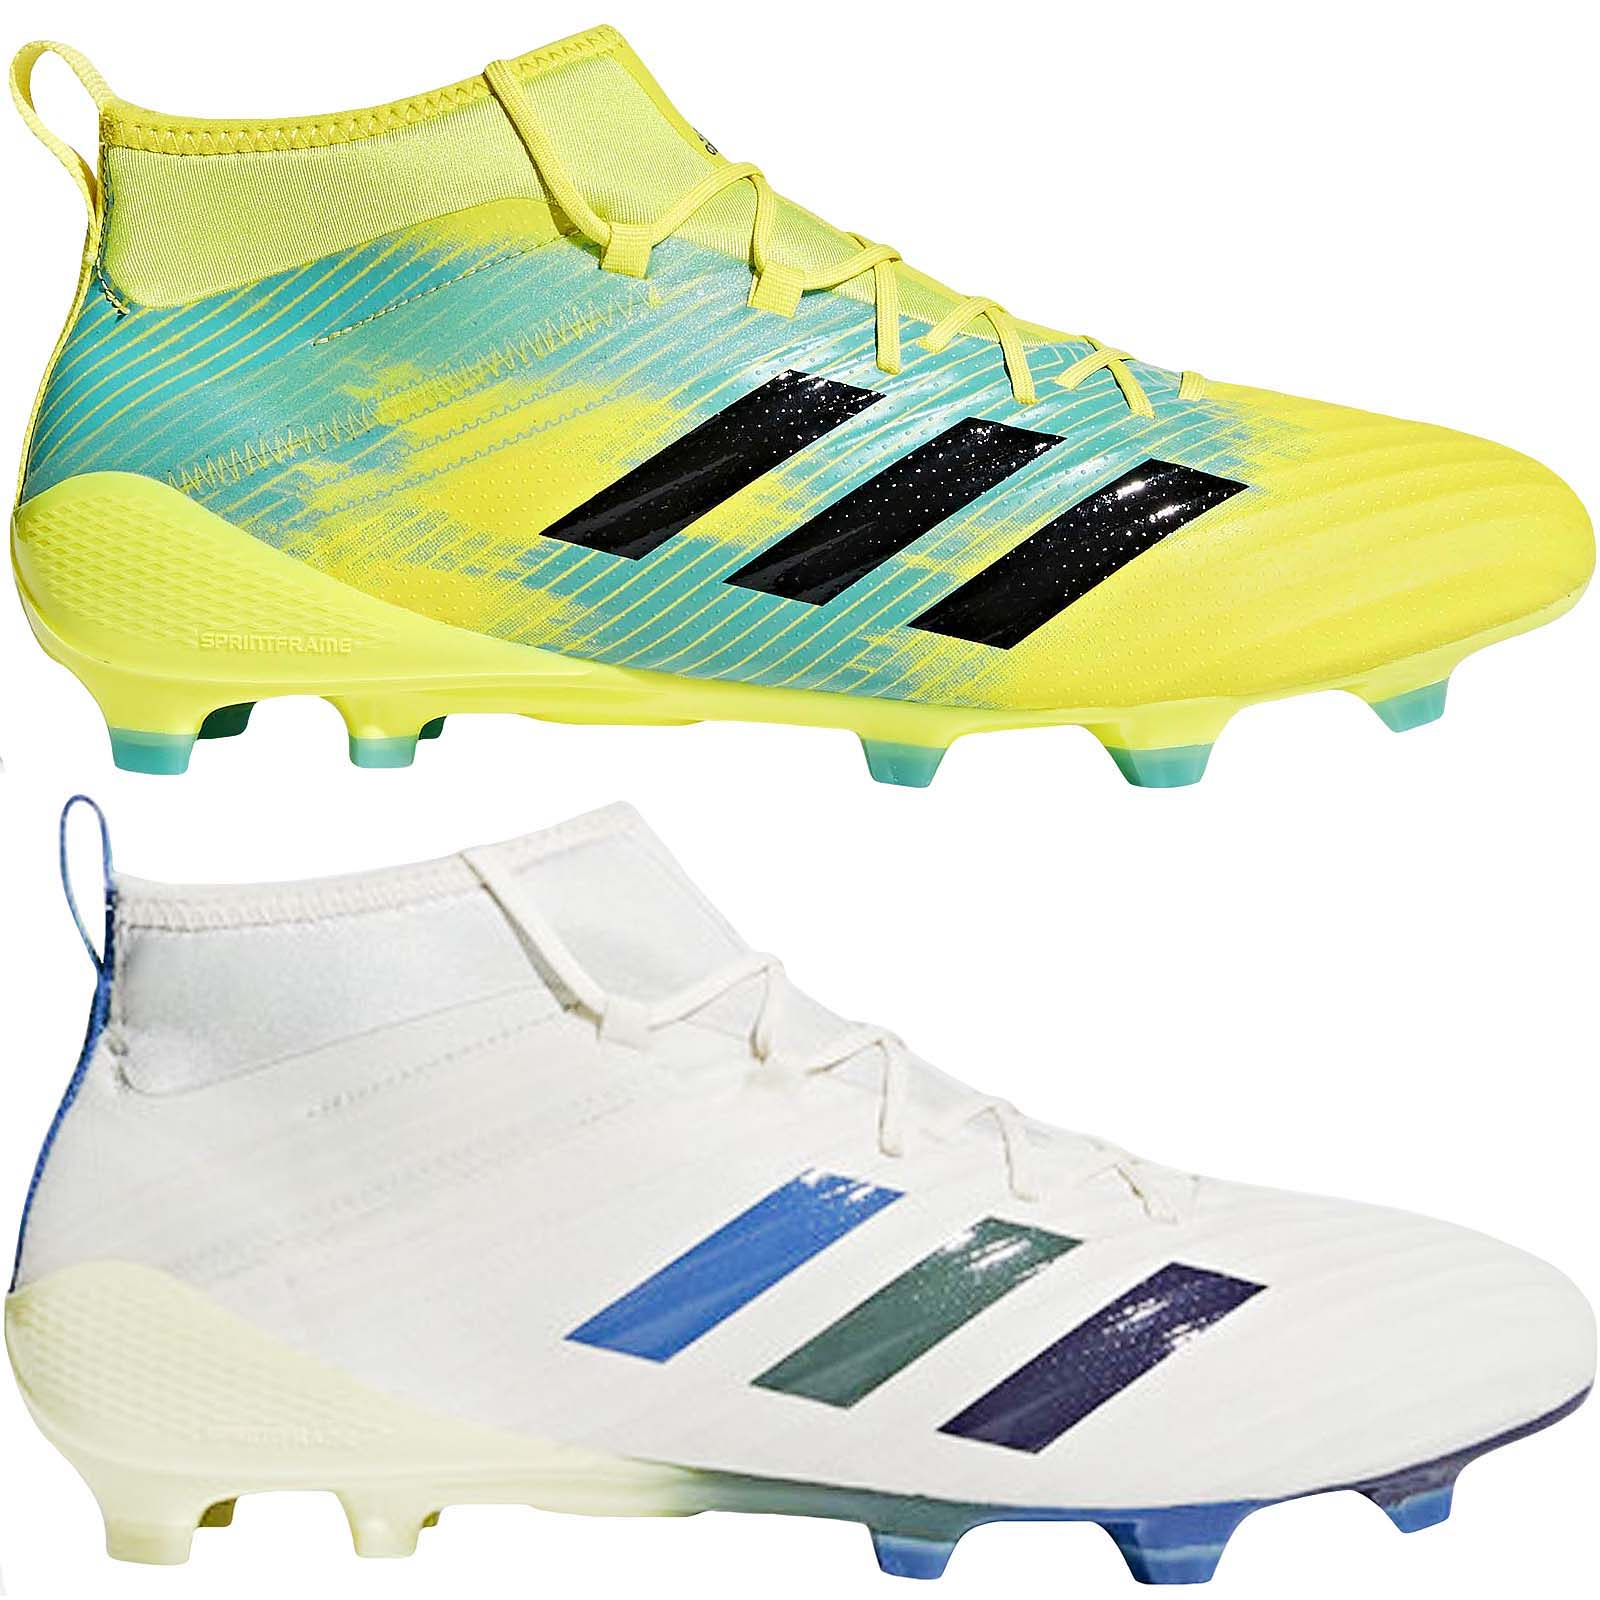 Details about adidas Performance Mens Predator Flare FG Rugby Shoes Trainers Boots